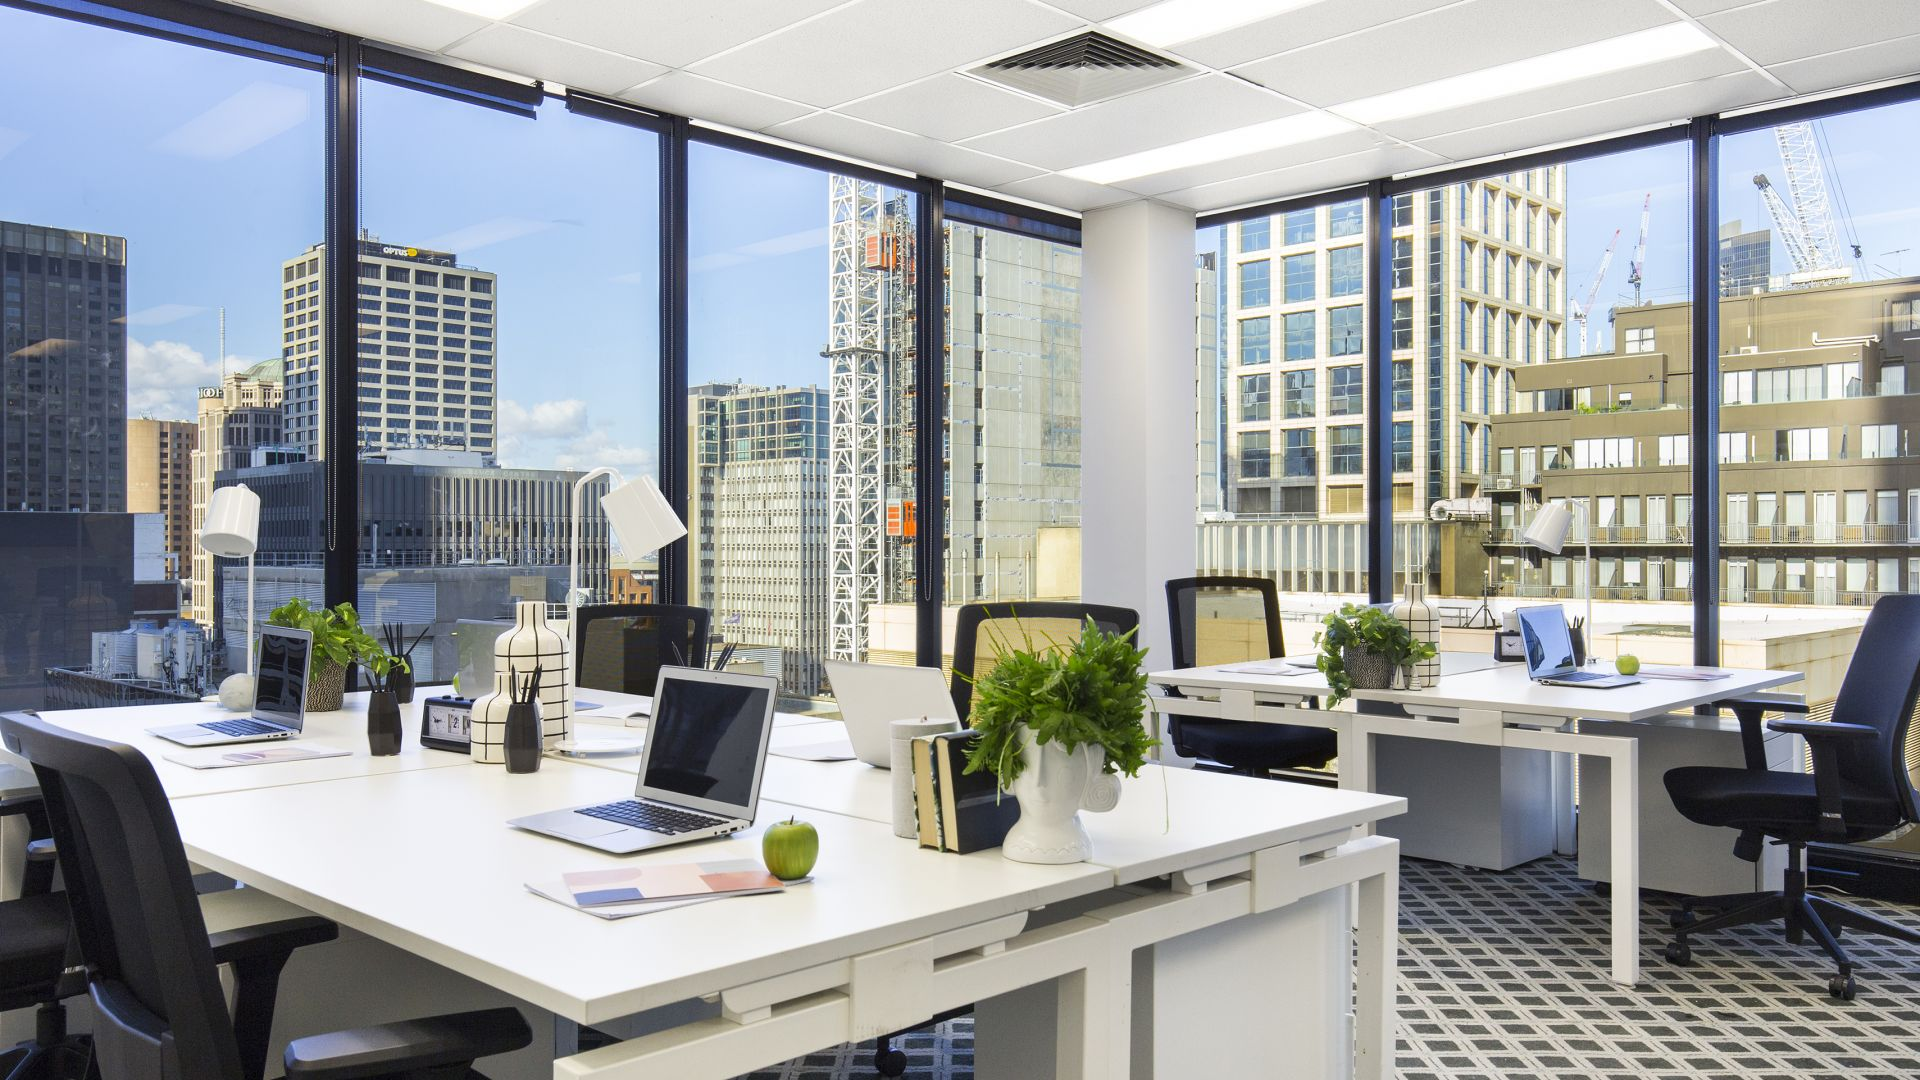 Keep your business running with a private, secure office in a first-class CBD location